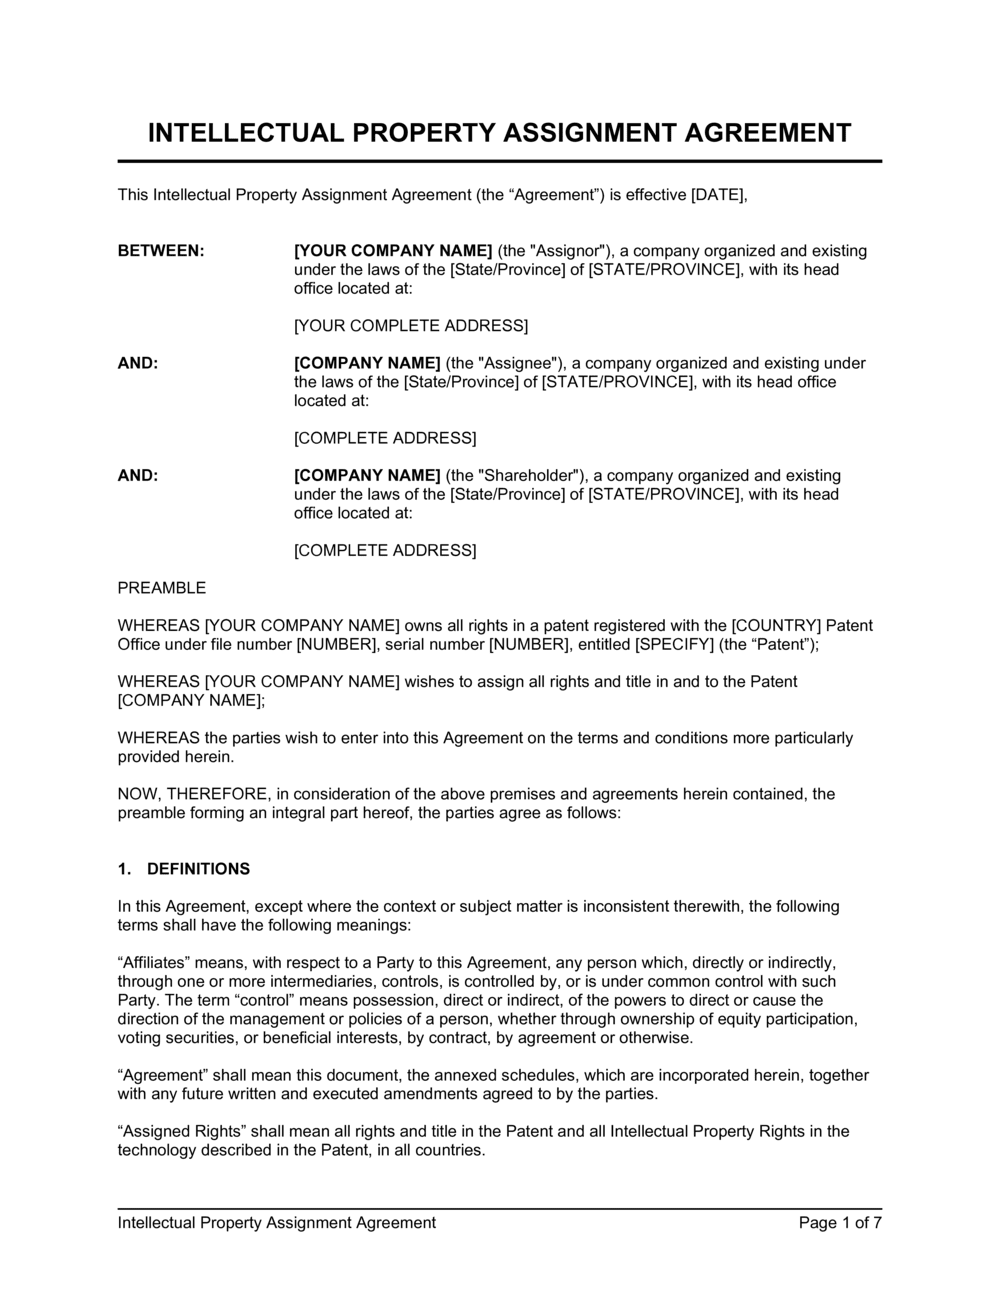 Business-in-a-Box's Intellectual Property Assignment Template